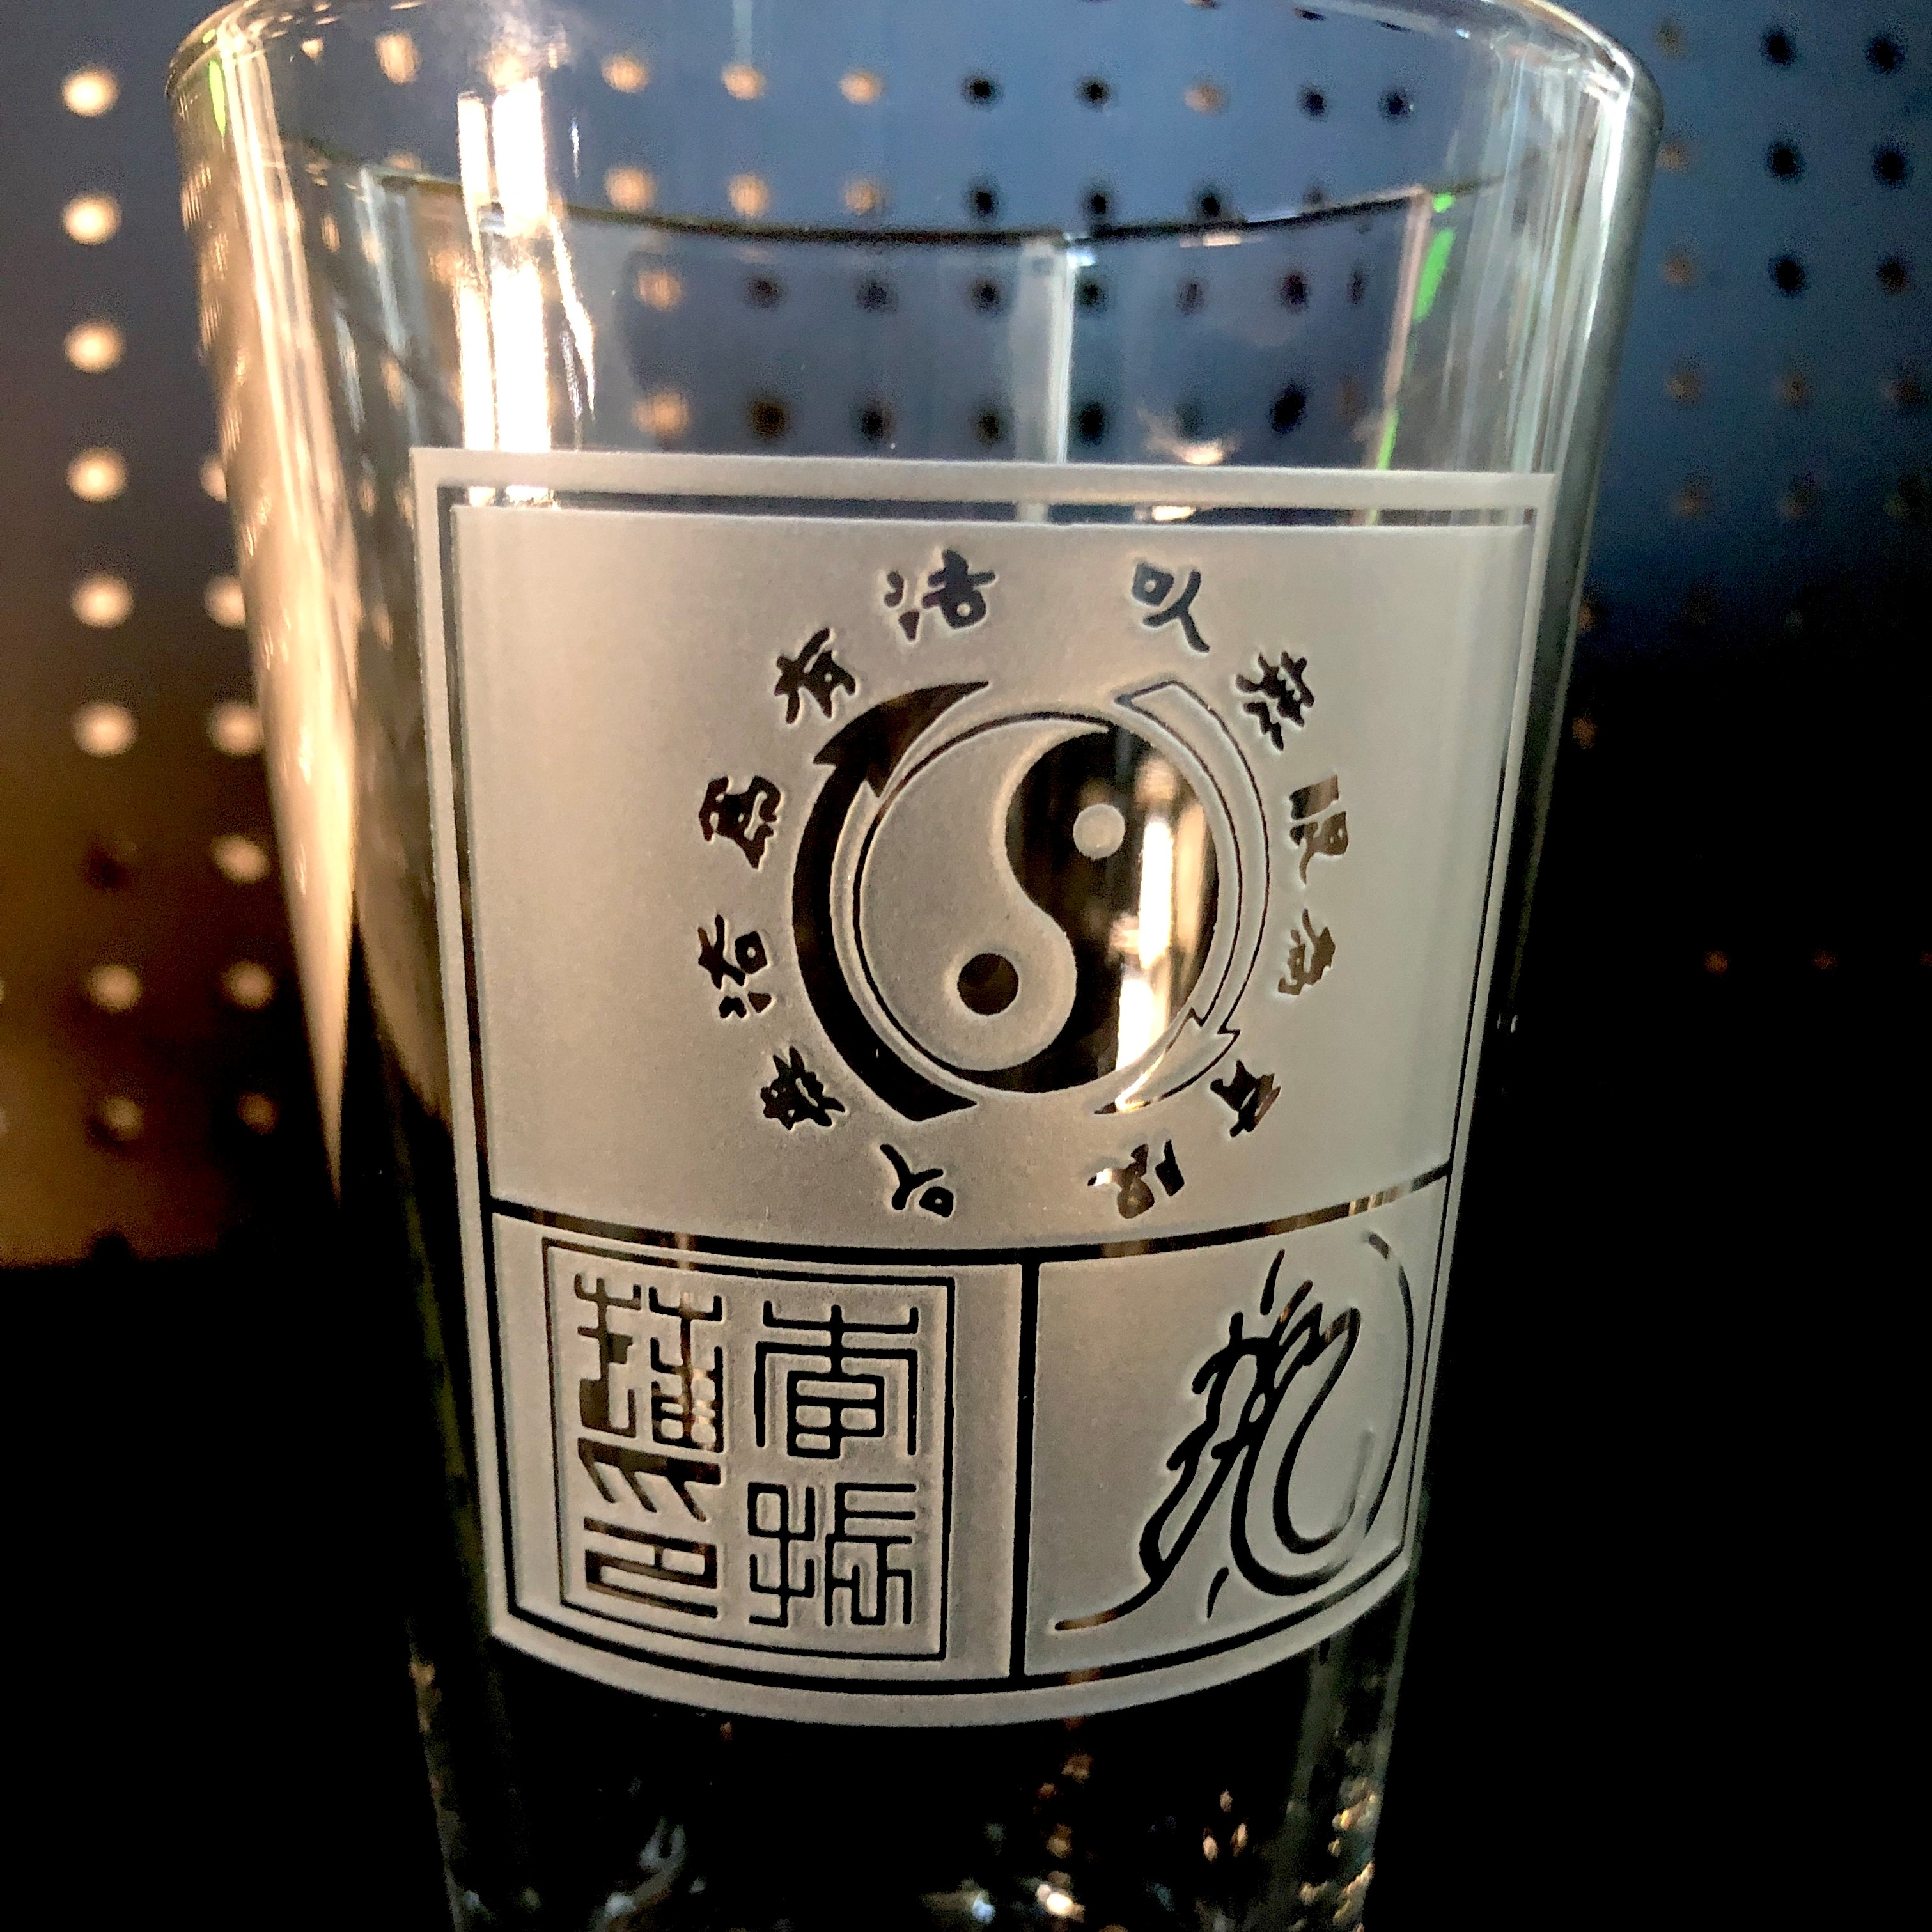 Jun Fan Jeet Kune Do 16oz. Etched Glass